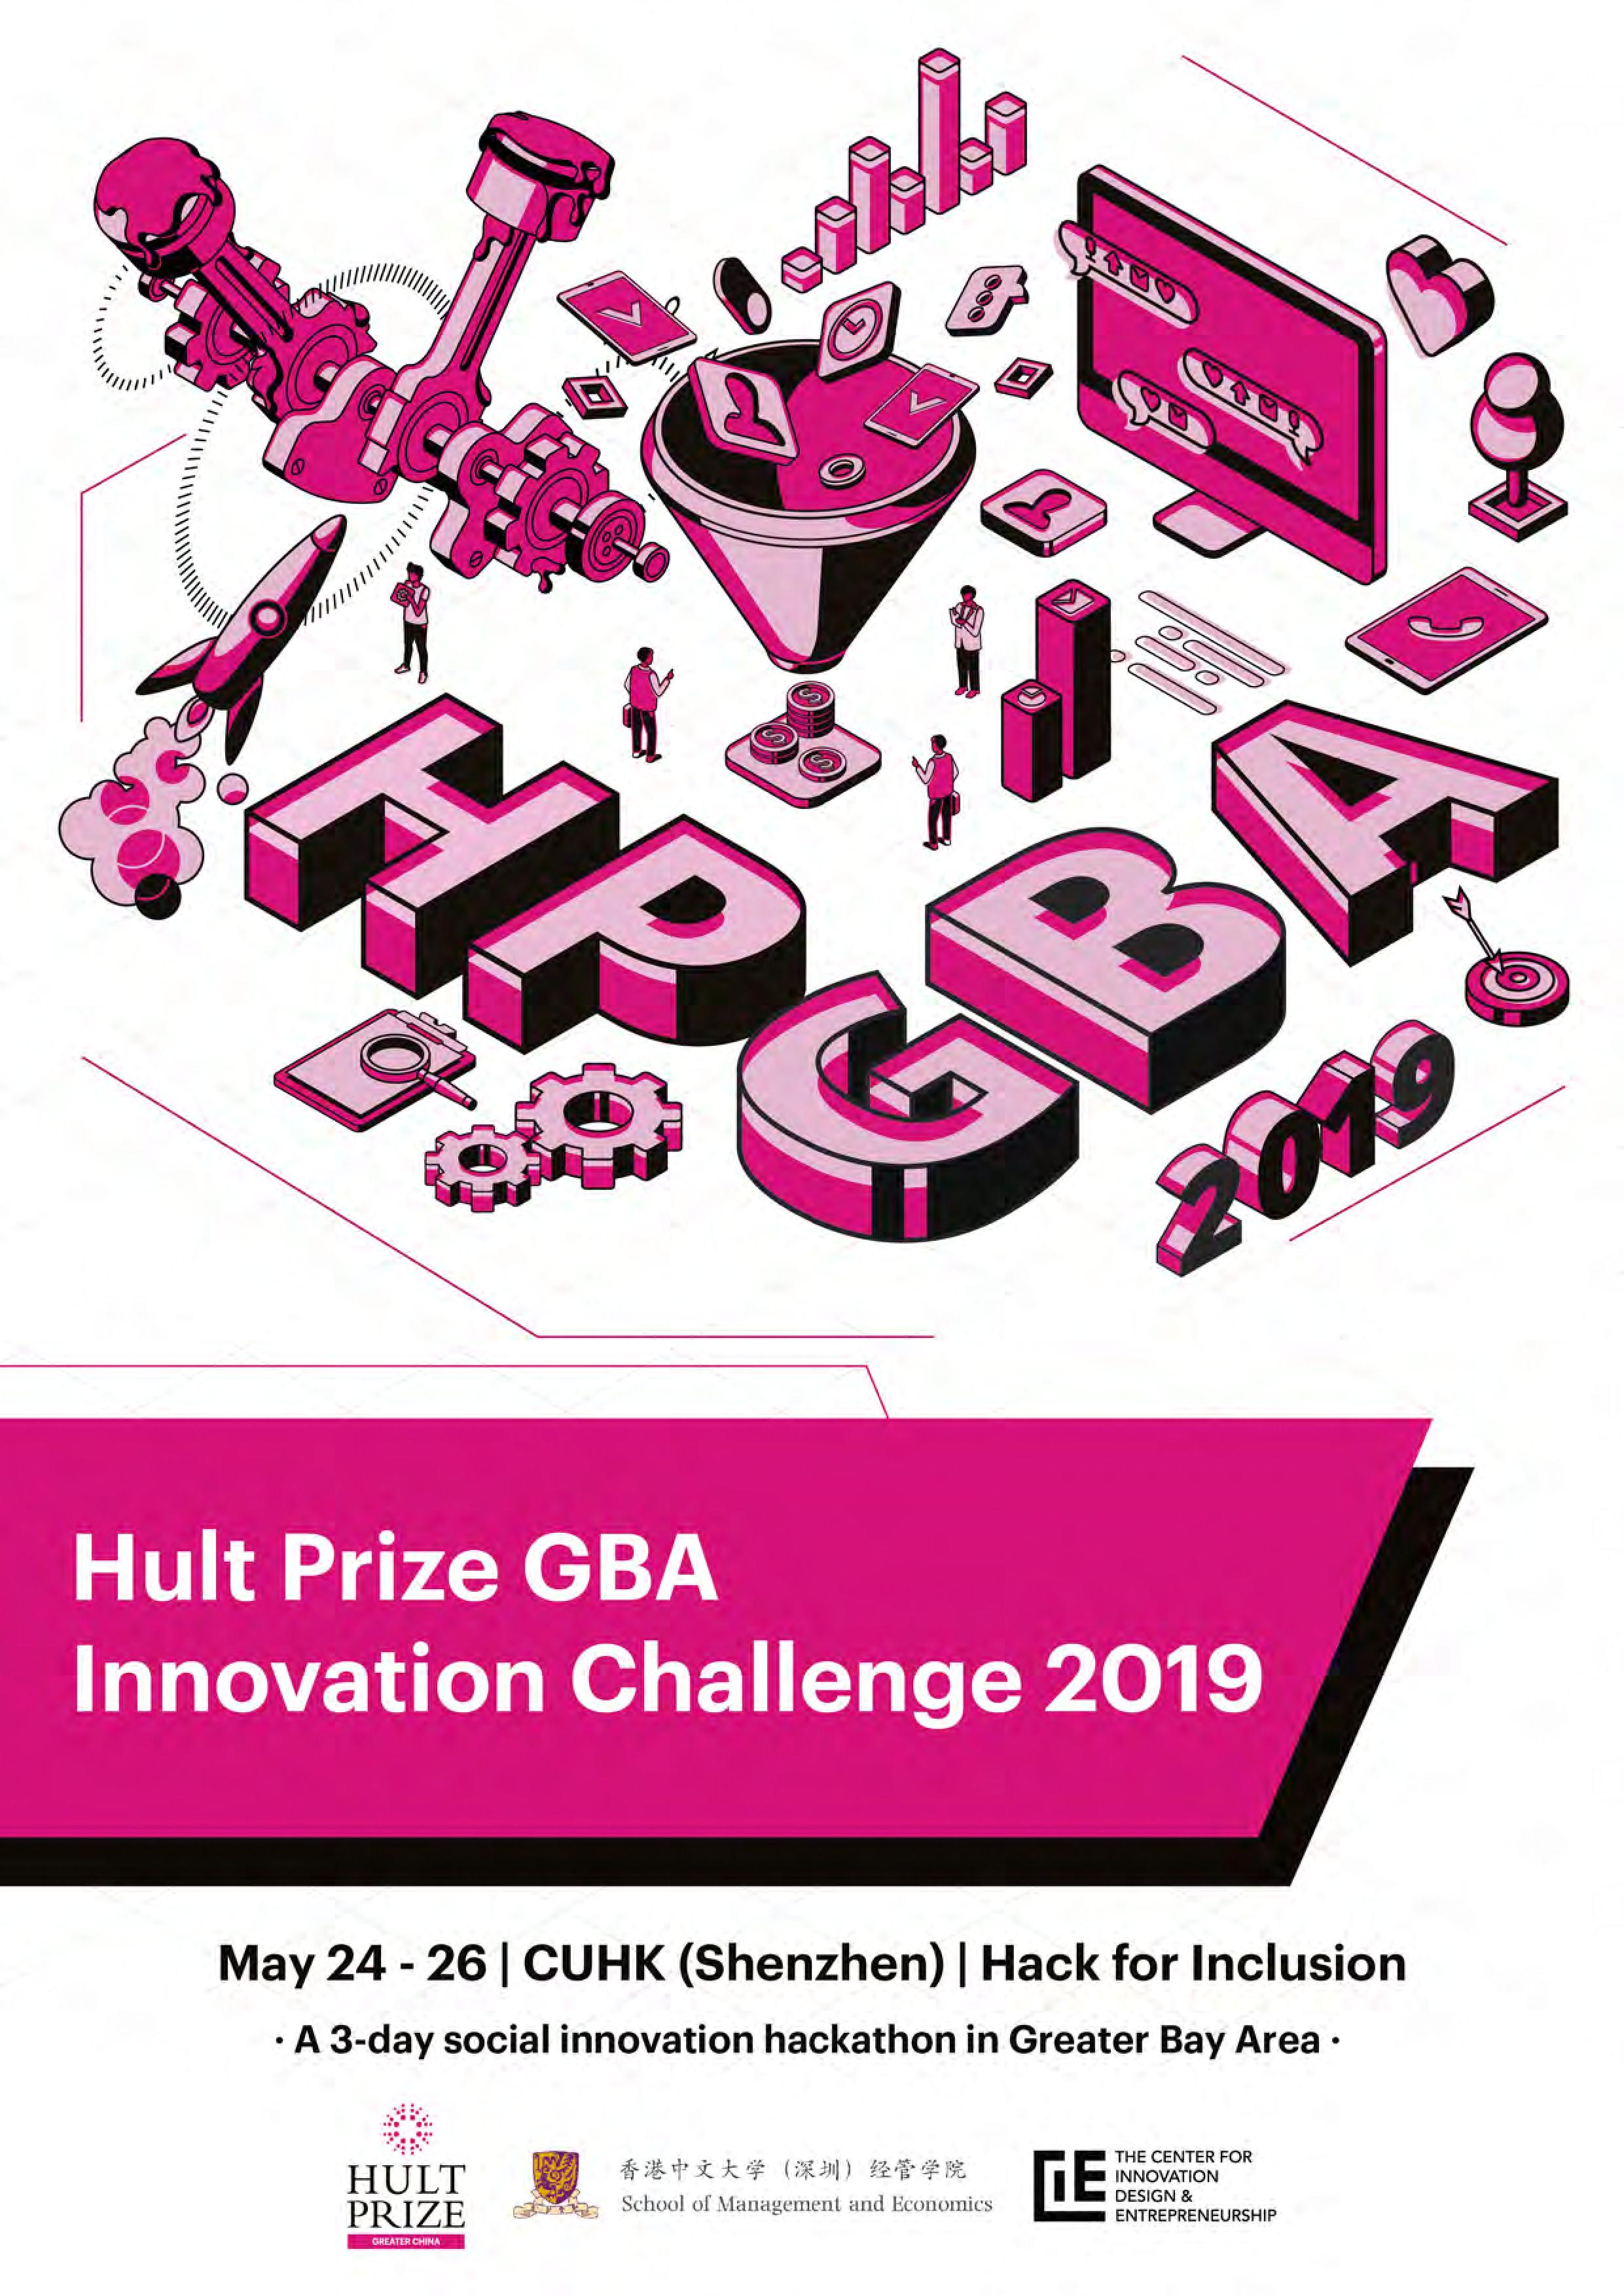 Hult Prize Greater Bay Area Innovation Challenge 2019